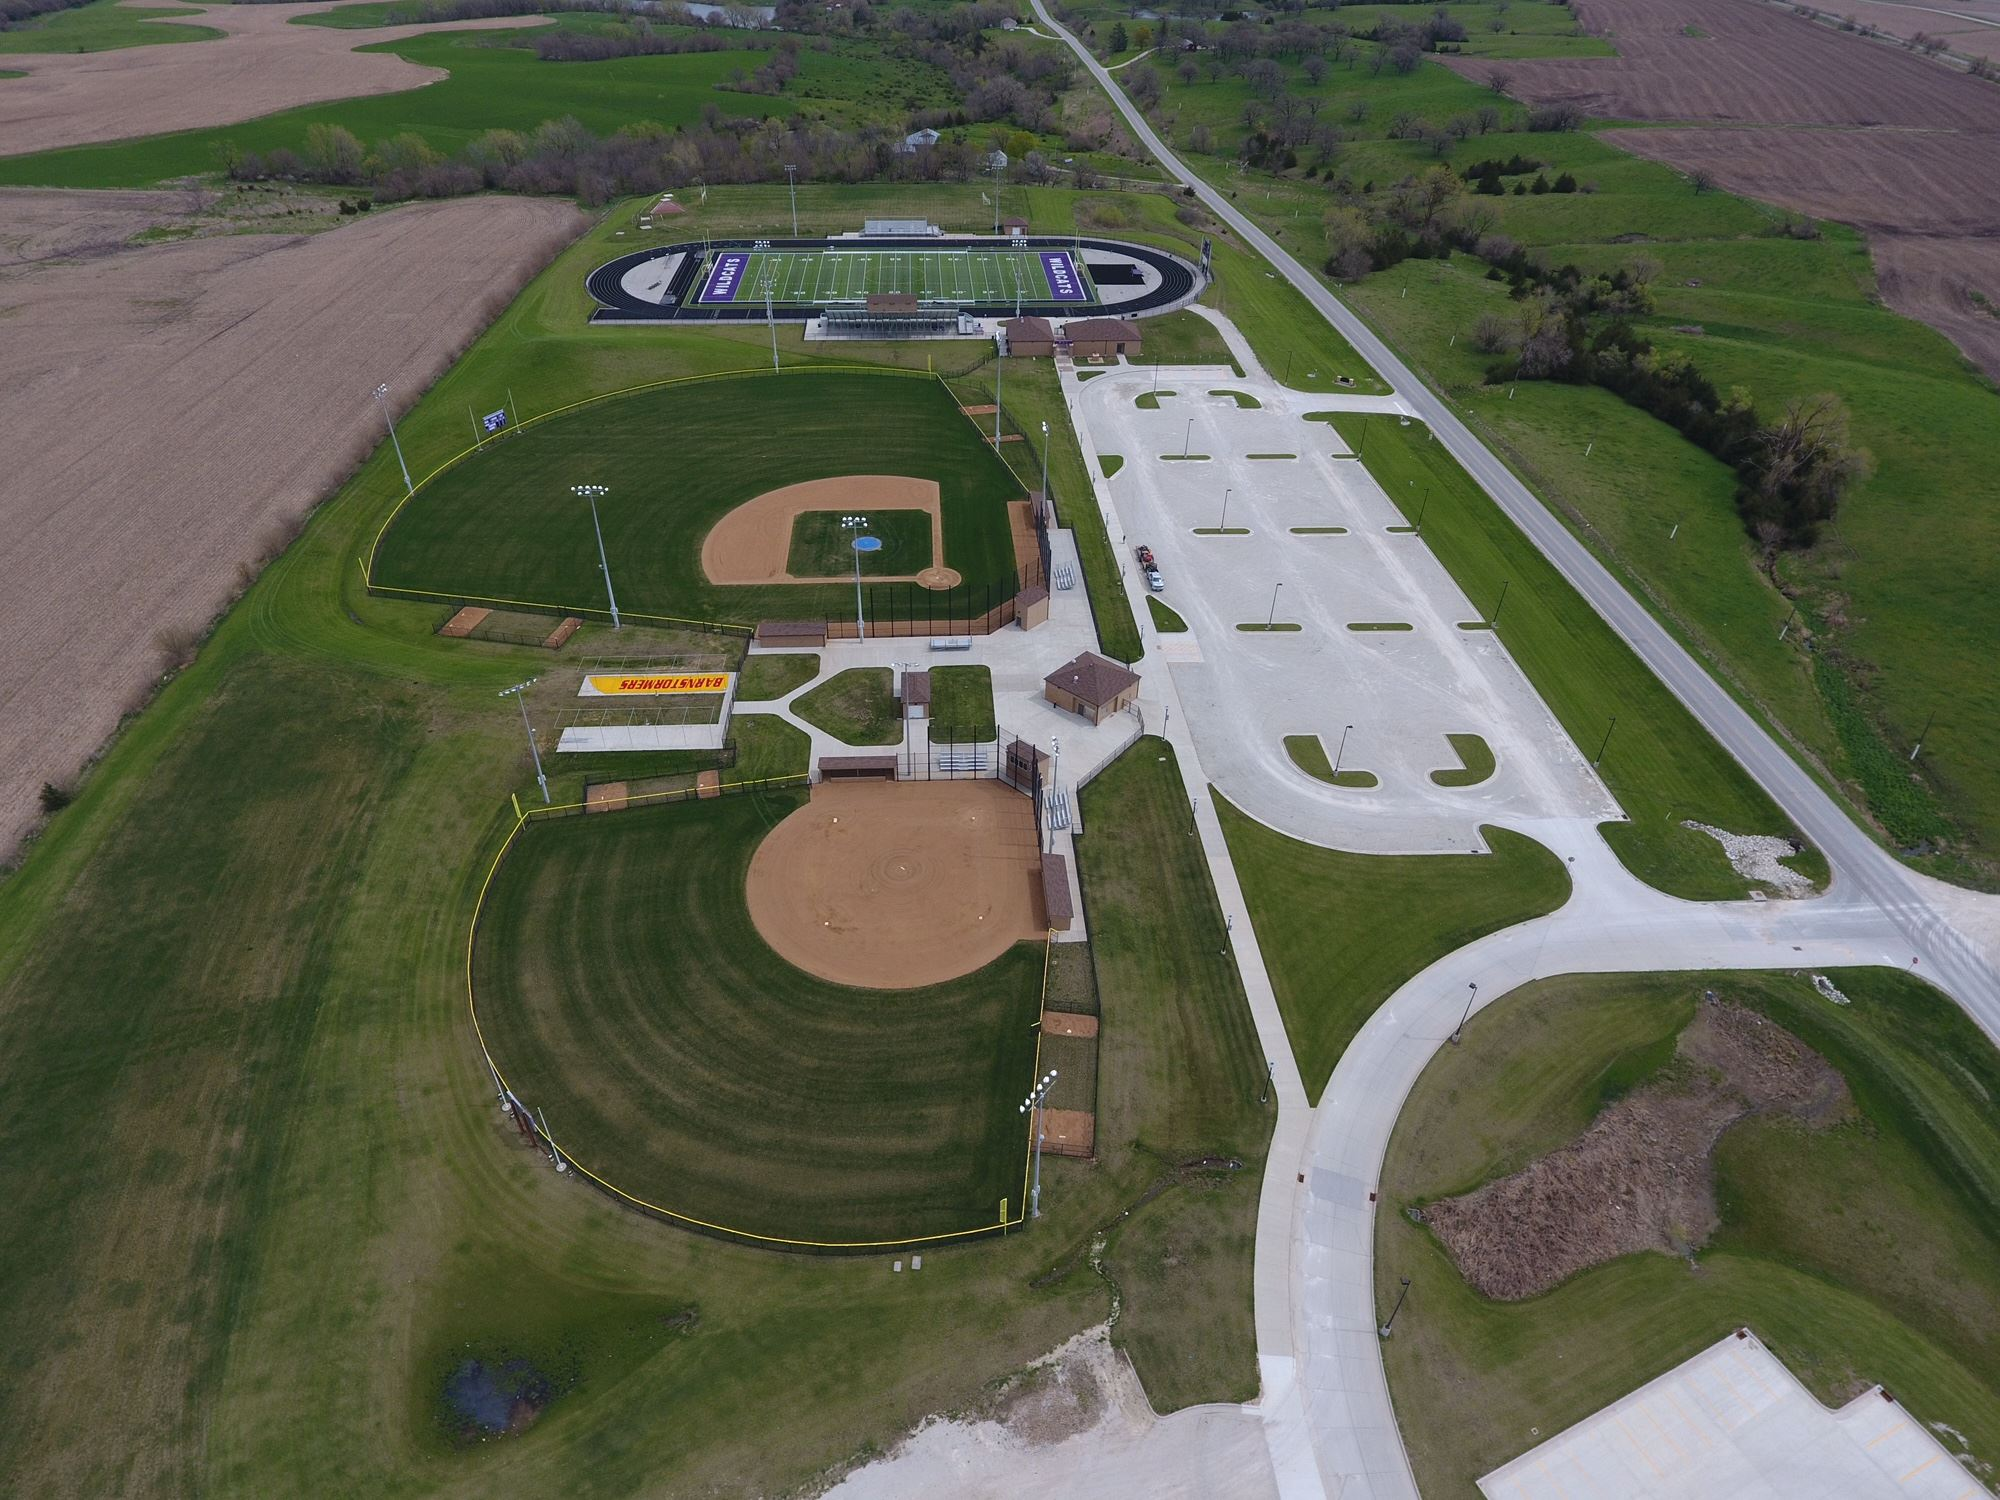 West Central Valley Athletic Complex